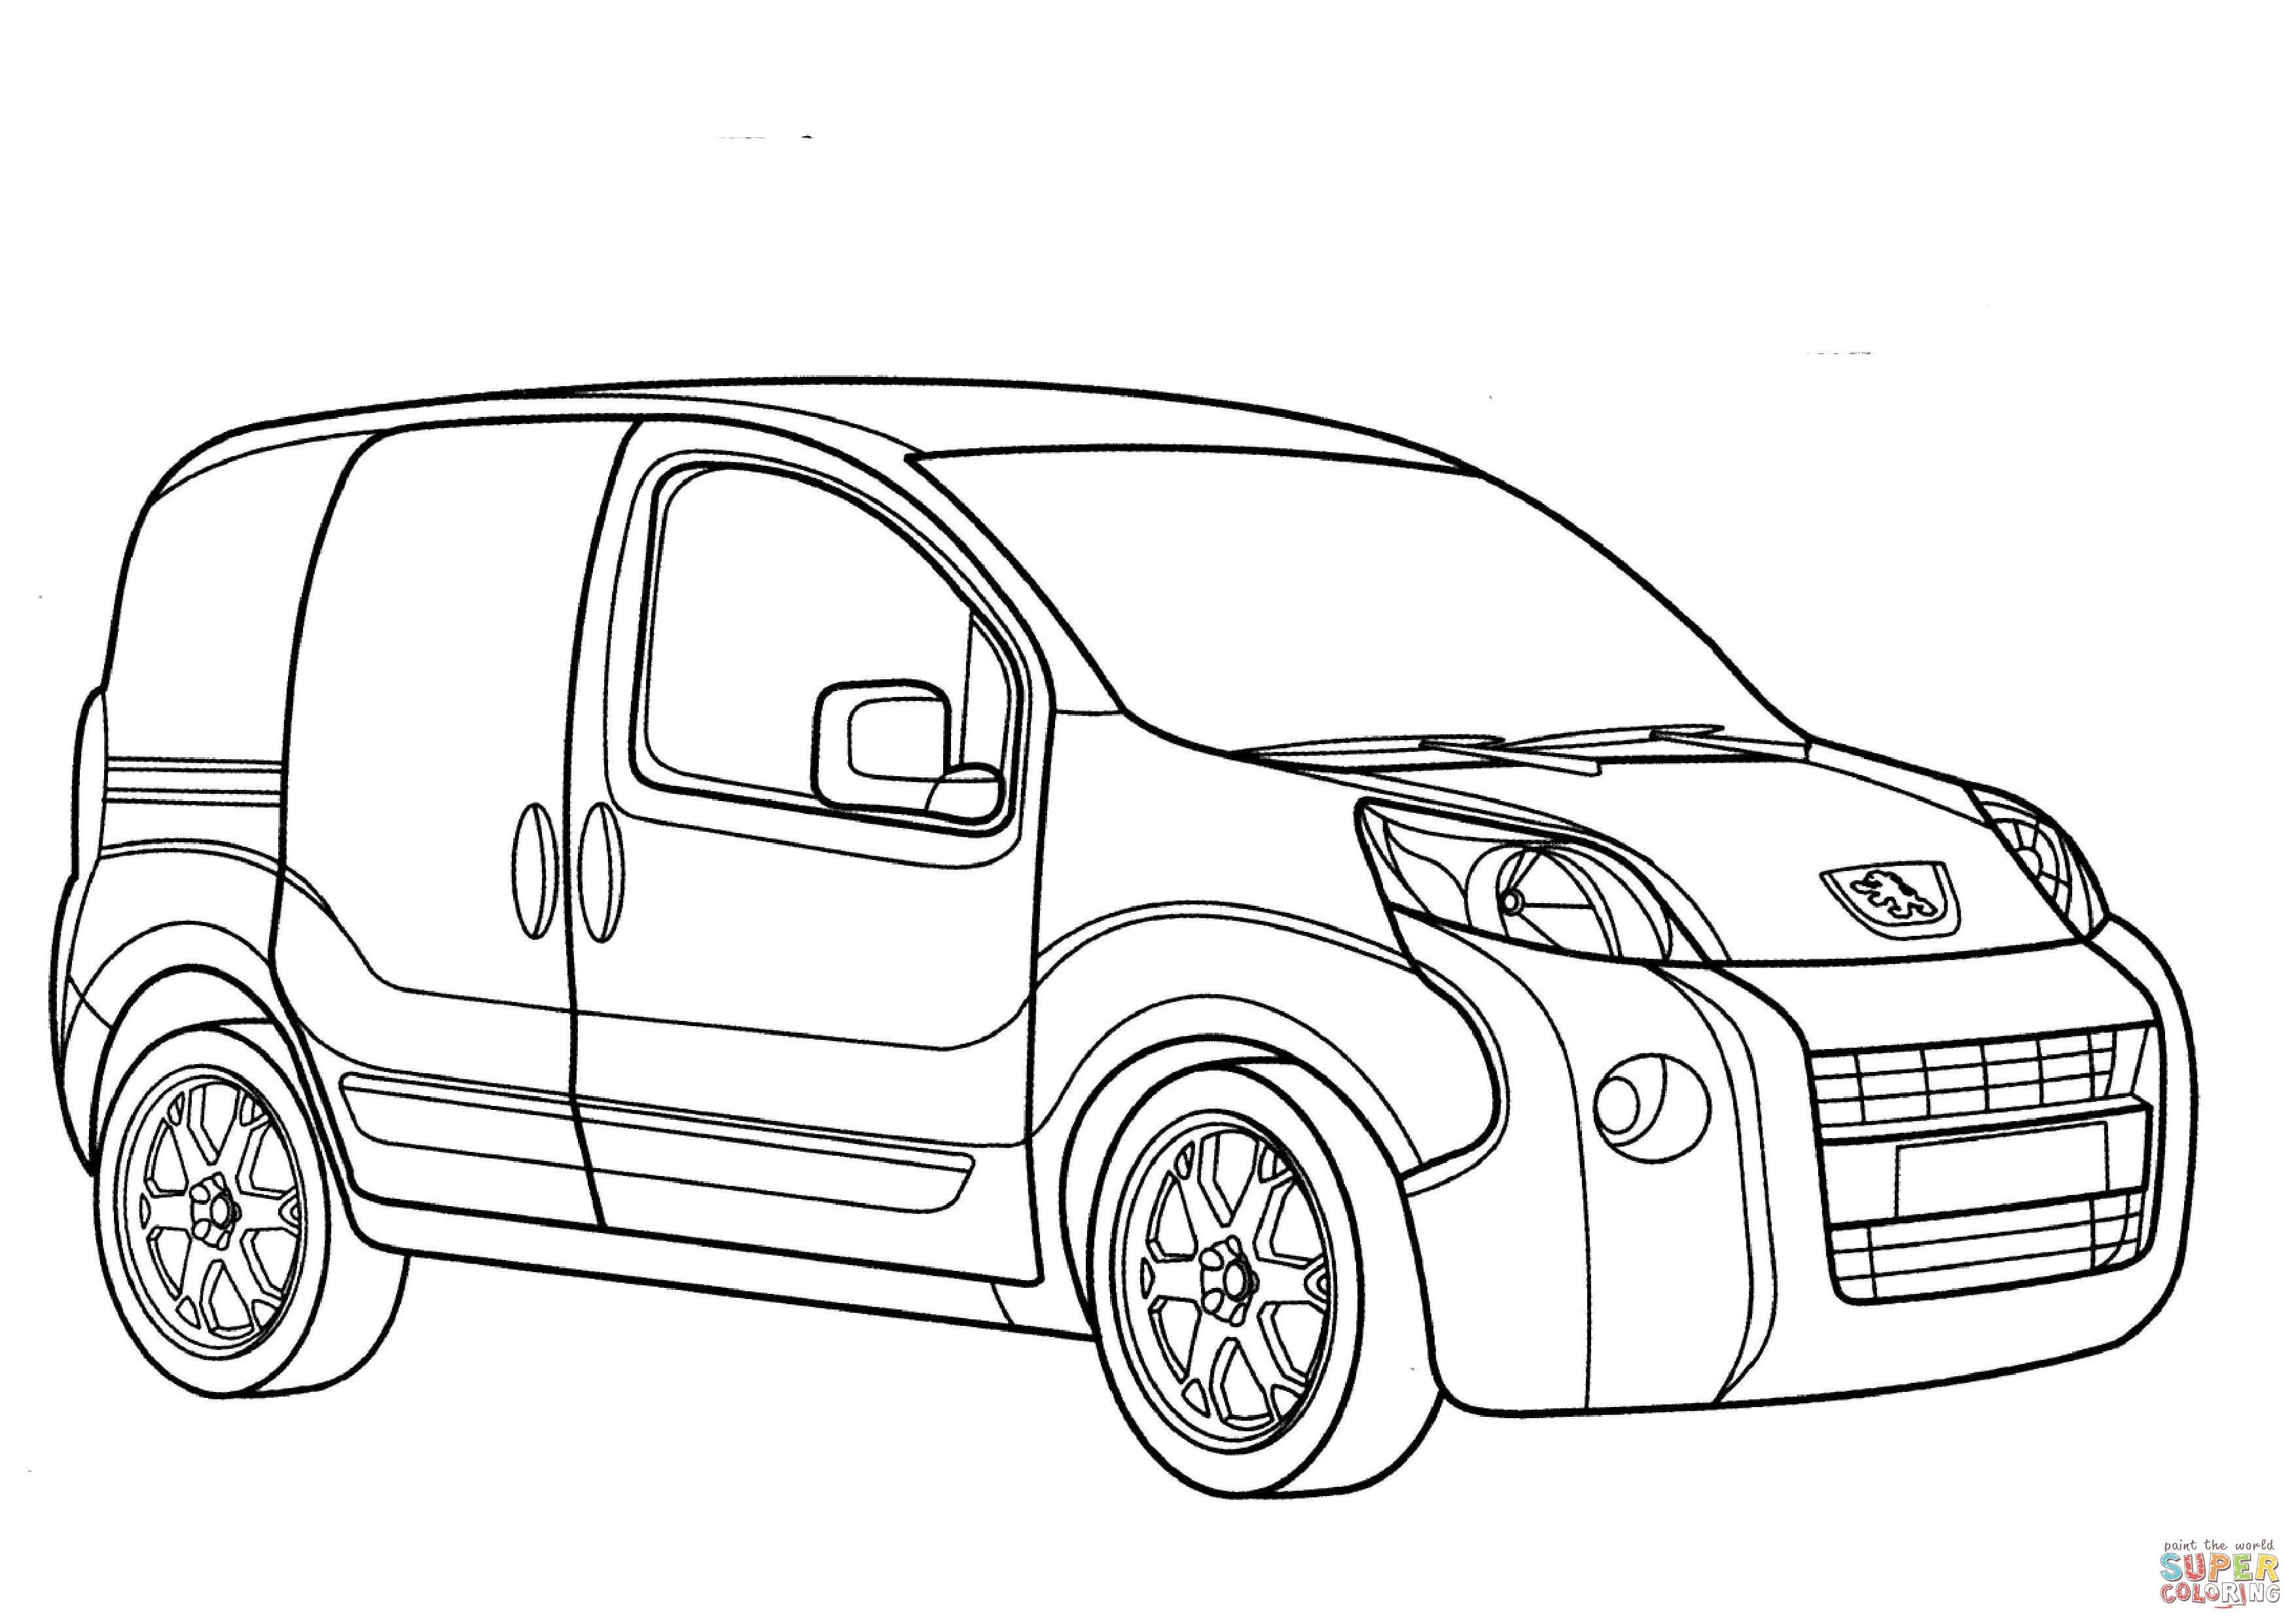 3508x2480 peugeot bipper coloring page free printable coloring pages